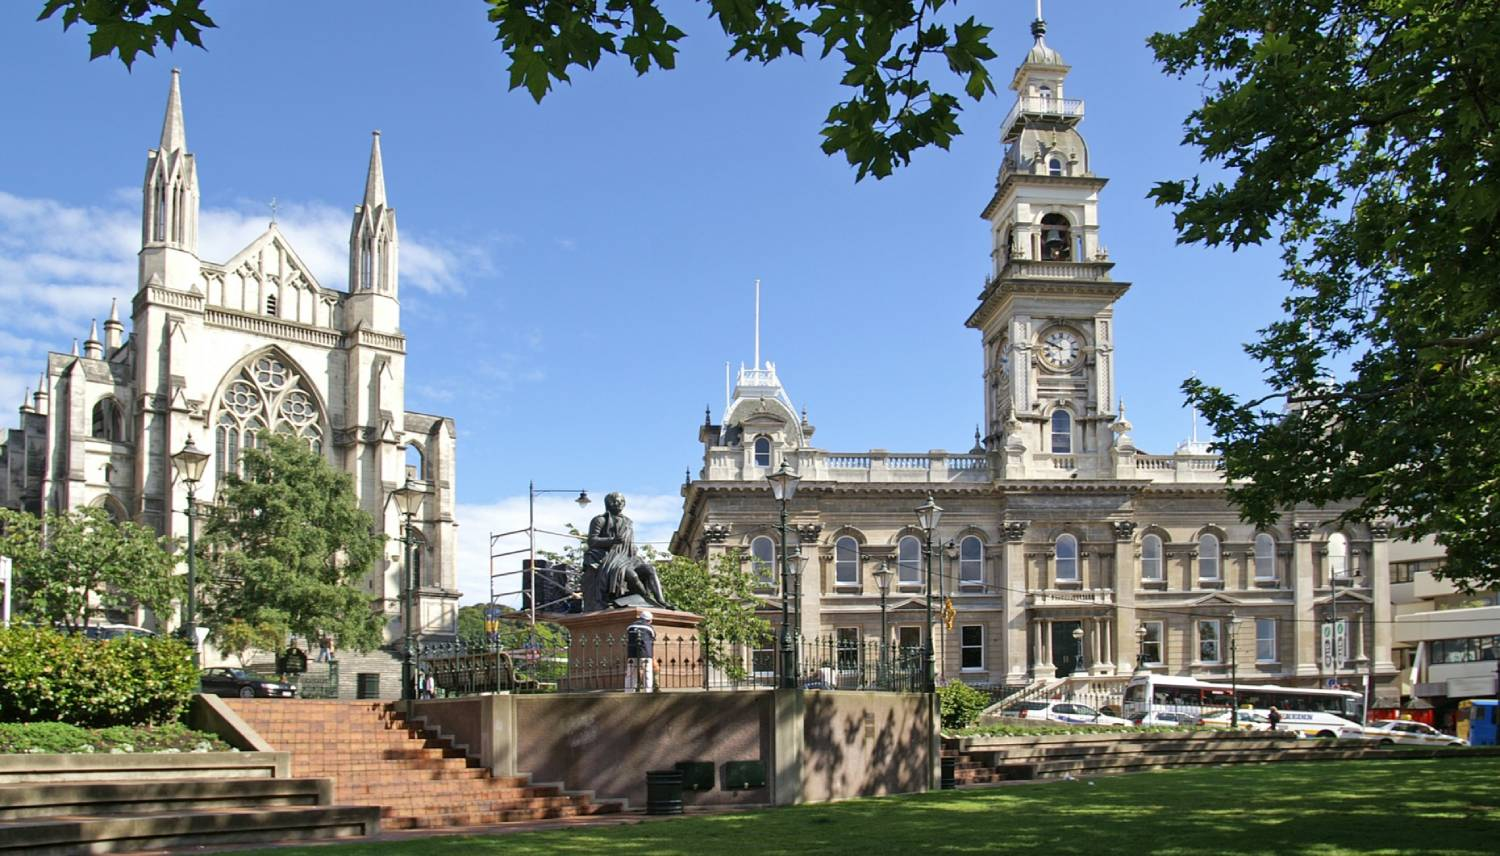 The Octagon - Things To Do In Dunedin